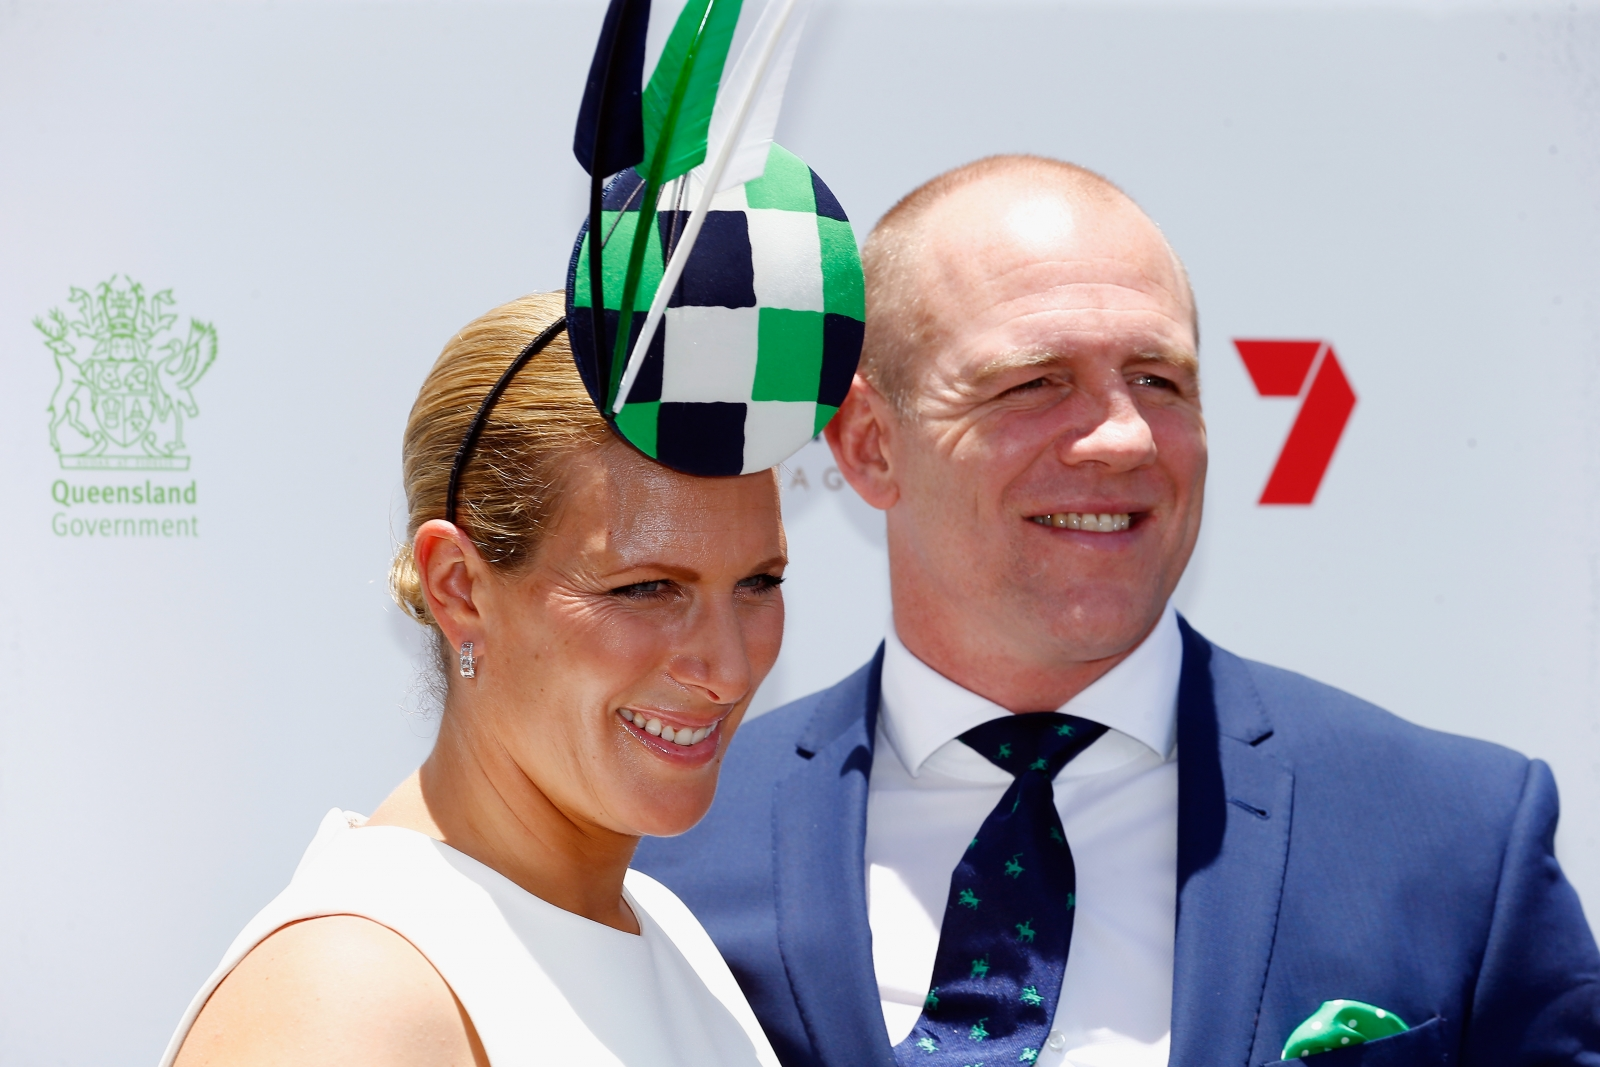 Zara Phillips and Mike Tindall